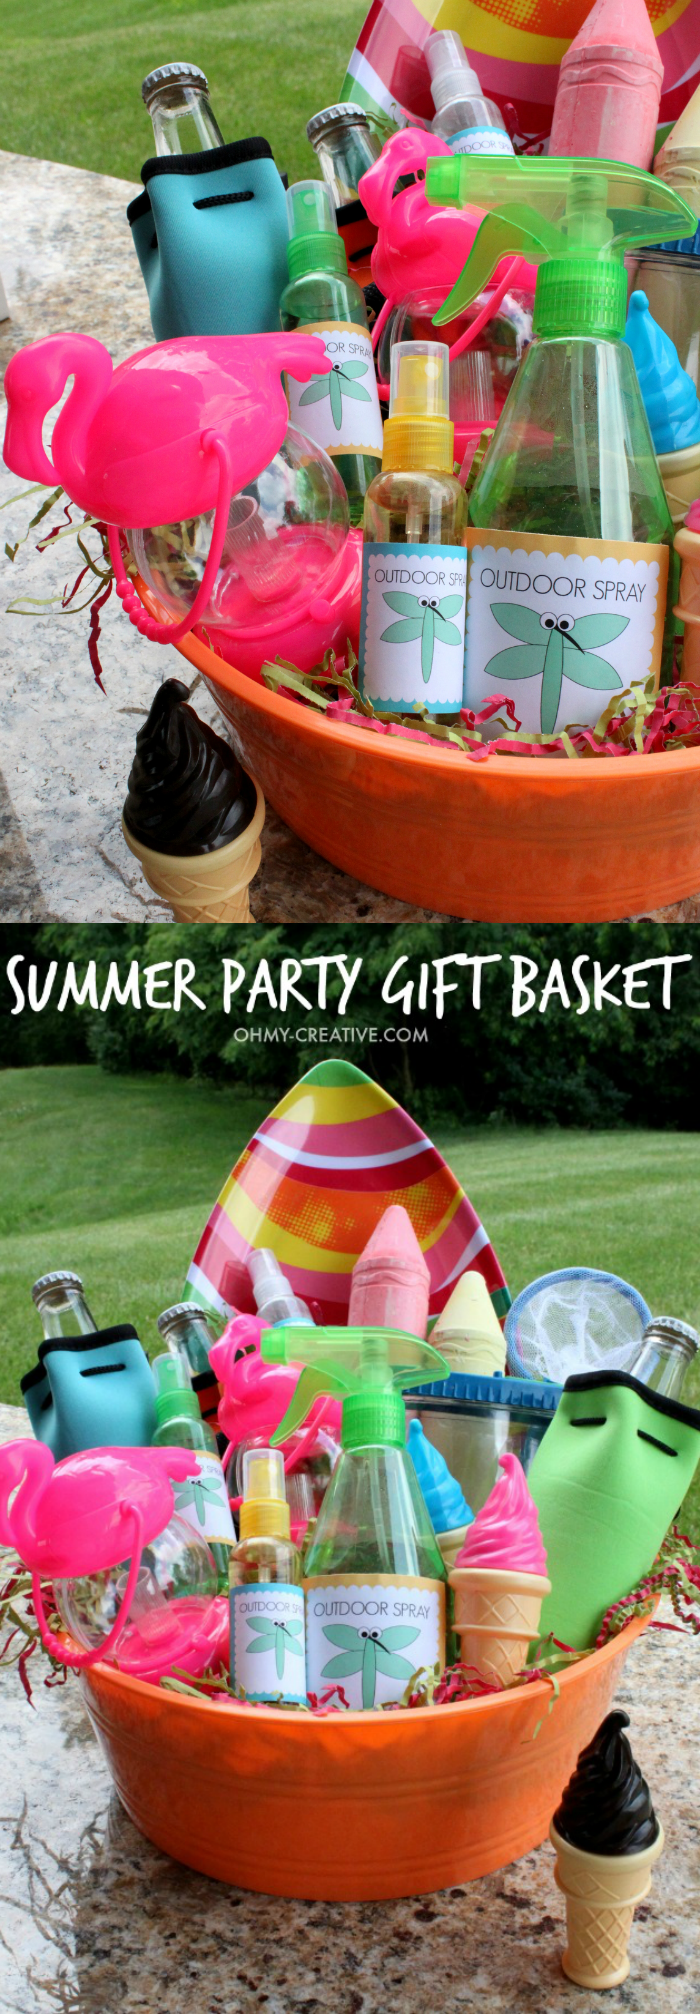 Summer party gift basket oh my creative for Super cheap gift ideas